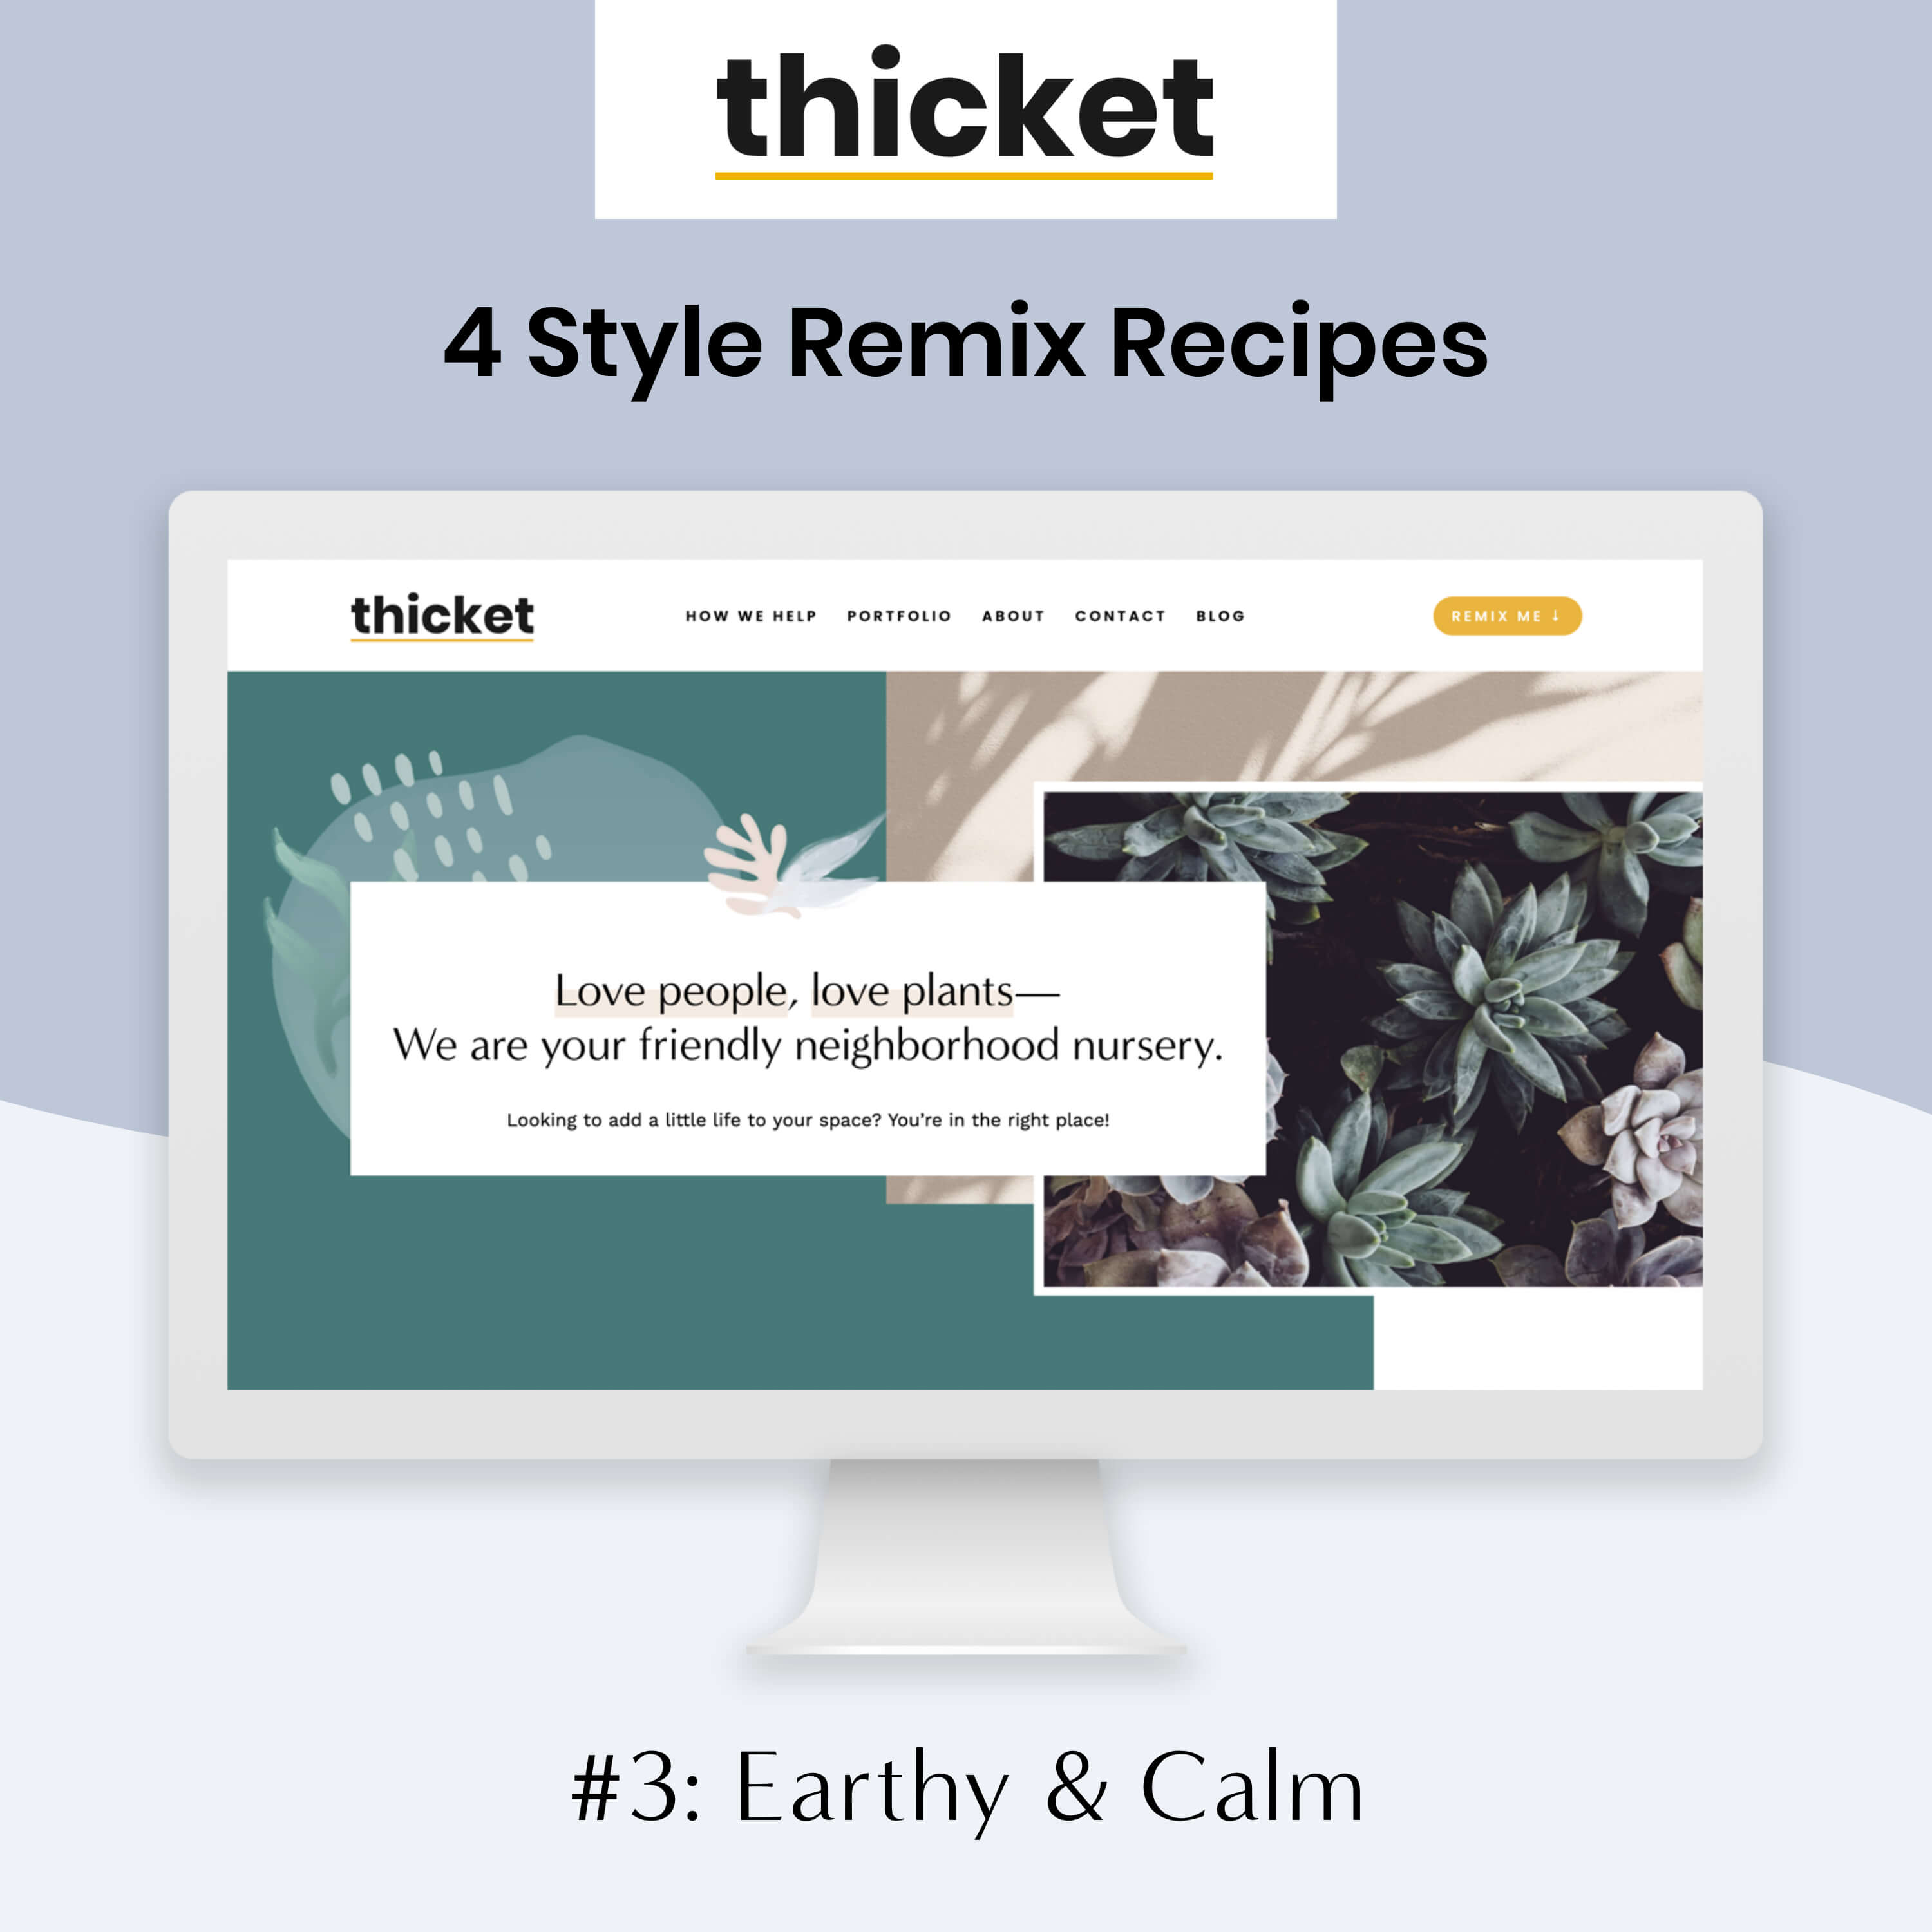 Thicket Earthy Calm